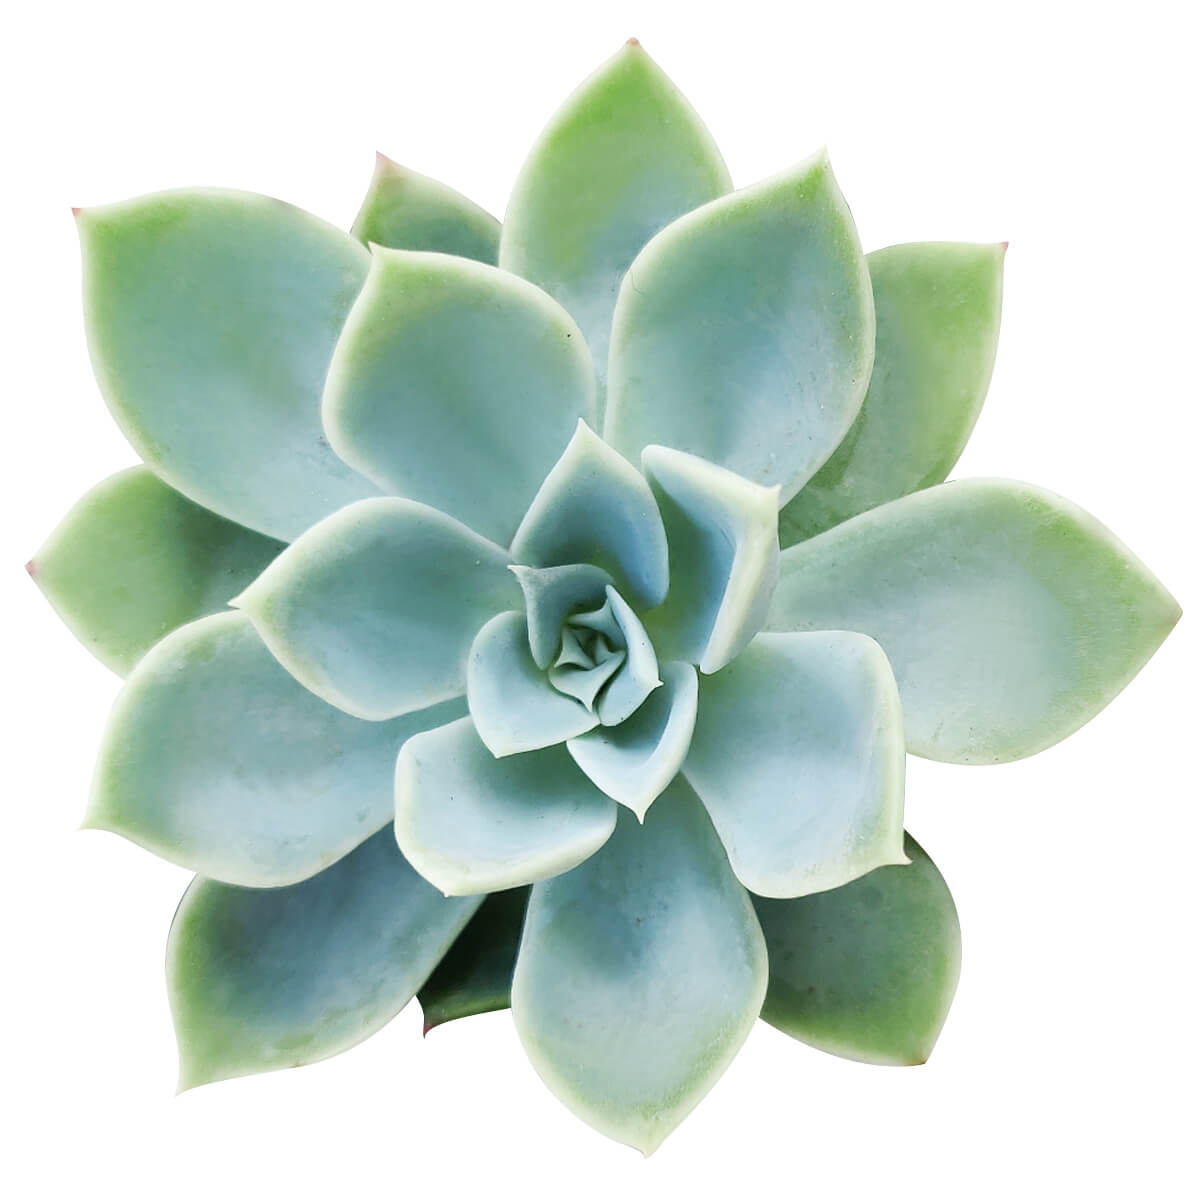 Echeveria Blue Atoll for sale, monthly succulents, succulents store in CA, cactus, succulent care, succulent care guide, how to grow succulents, succulent plant, Succulents, Echeveria Blue Atoll in California, How to grow Echeveria Blue Atoll, Succulents for thanksgiving, Thanksgiving succulents gift, Easter succulents idea